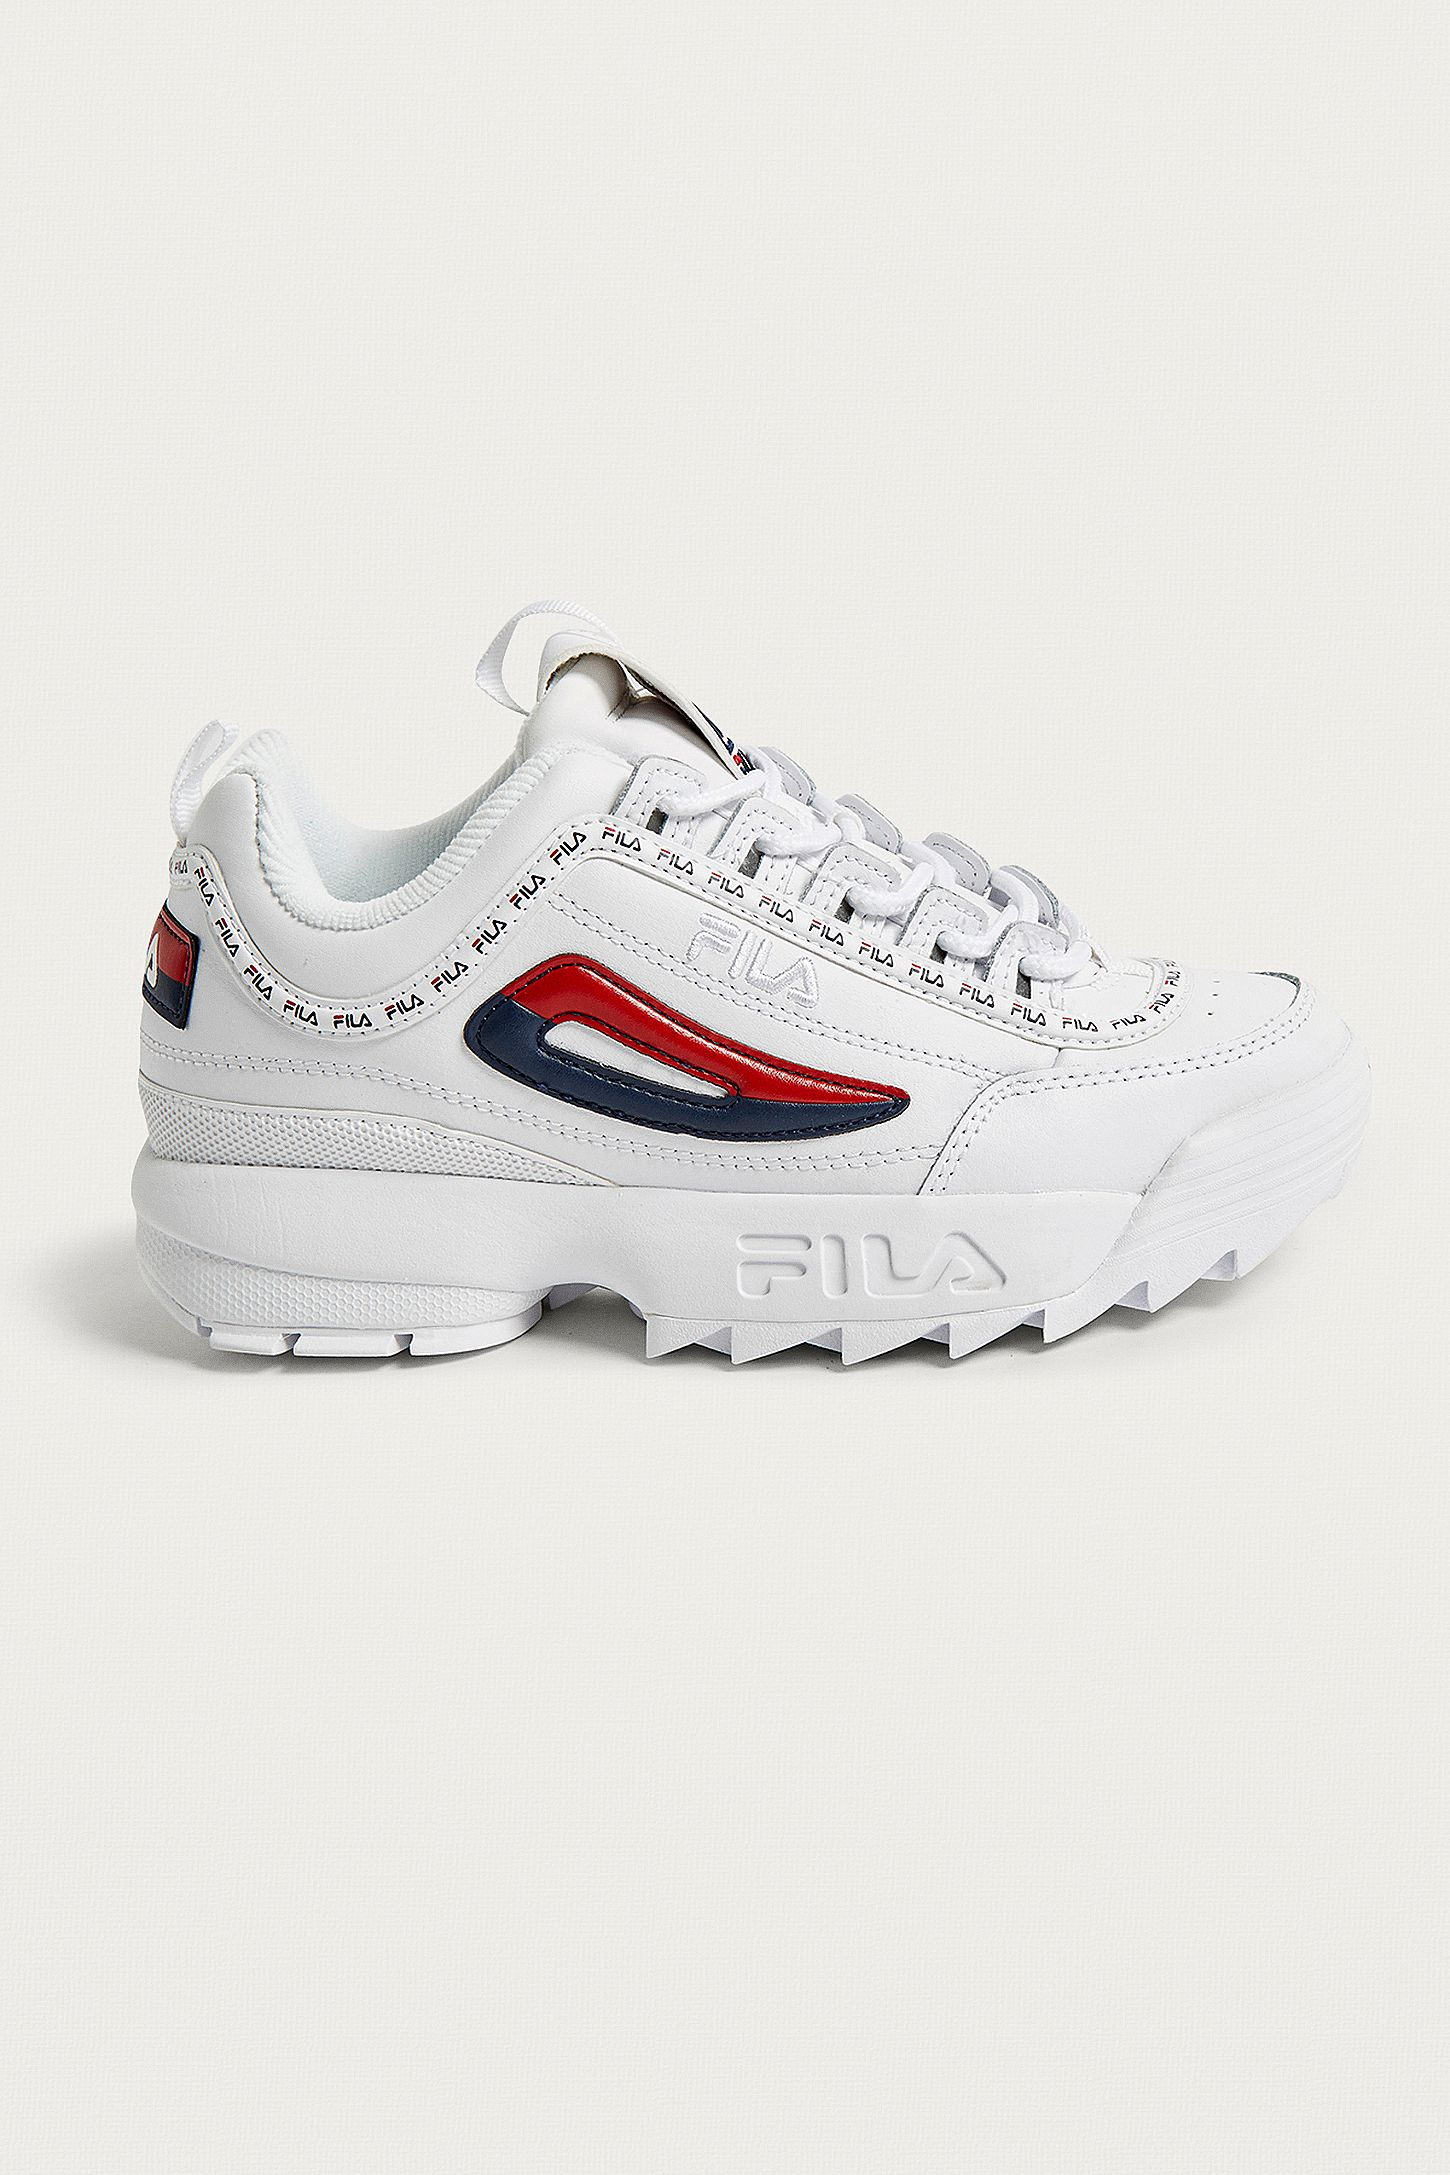 ed35e3ec26e FILA Disruptor II Premium White Trainers. Click on image to zoom. Hover to  zoom. Double Tap to Zoom